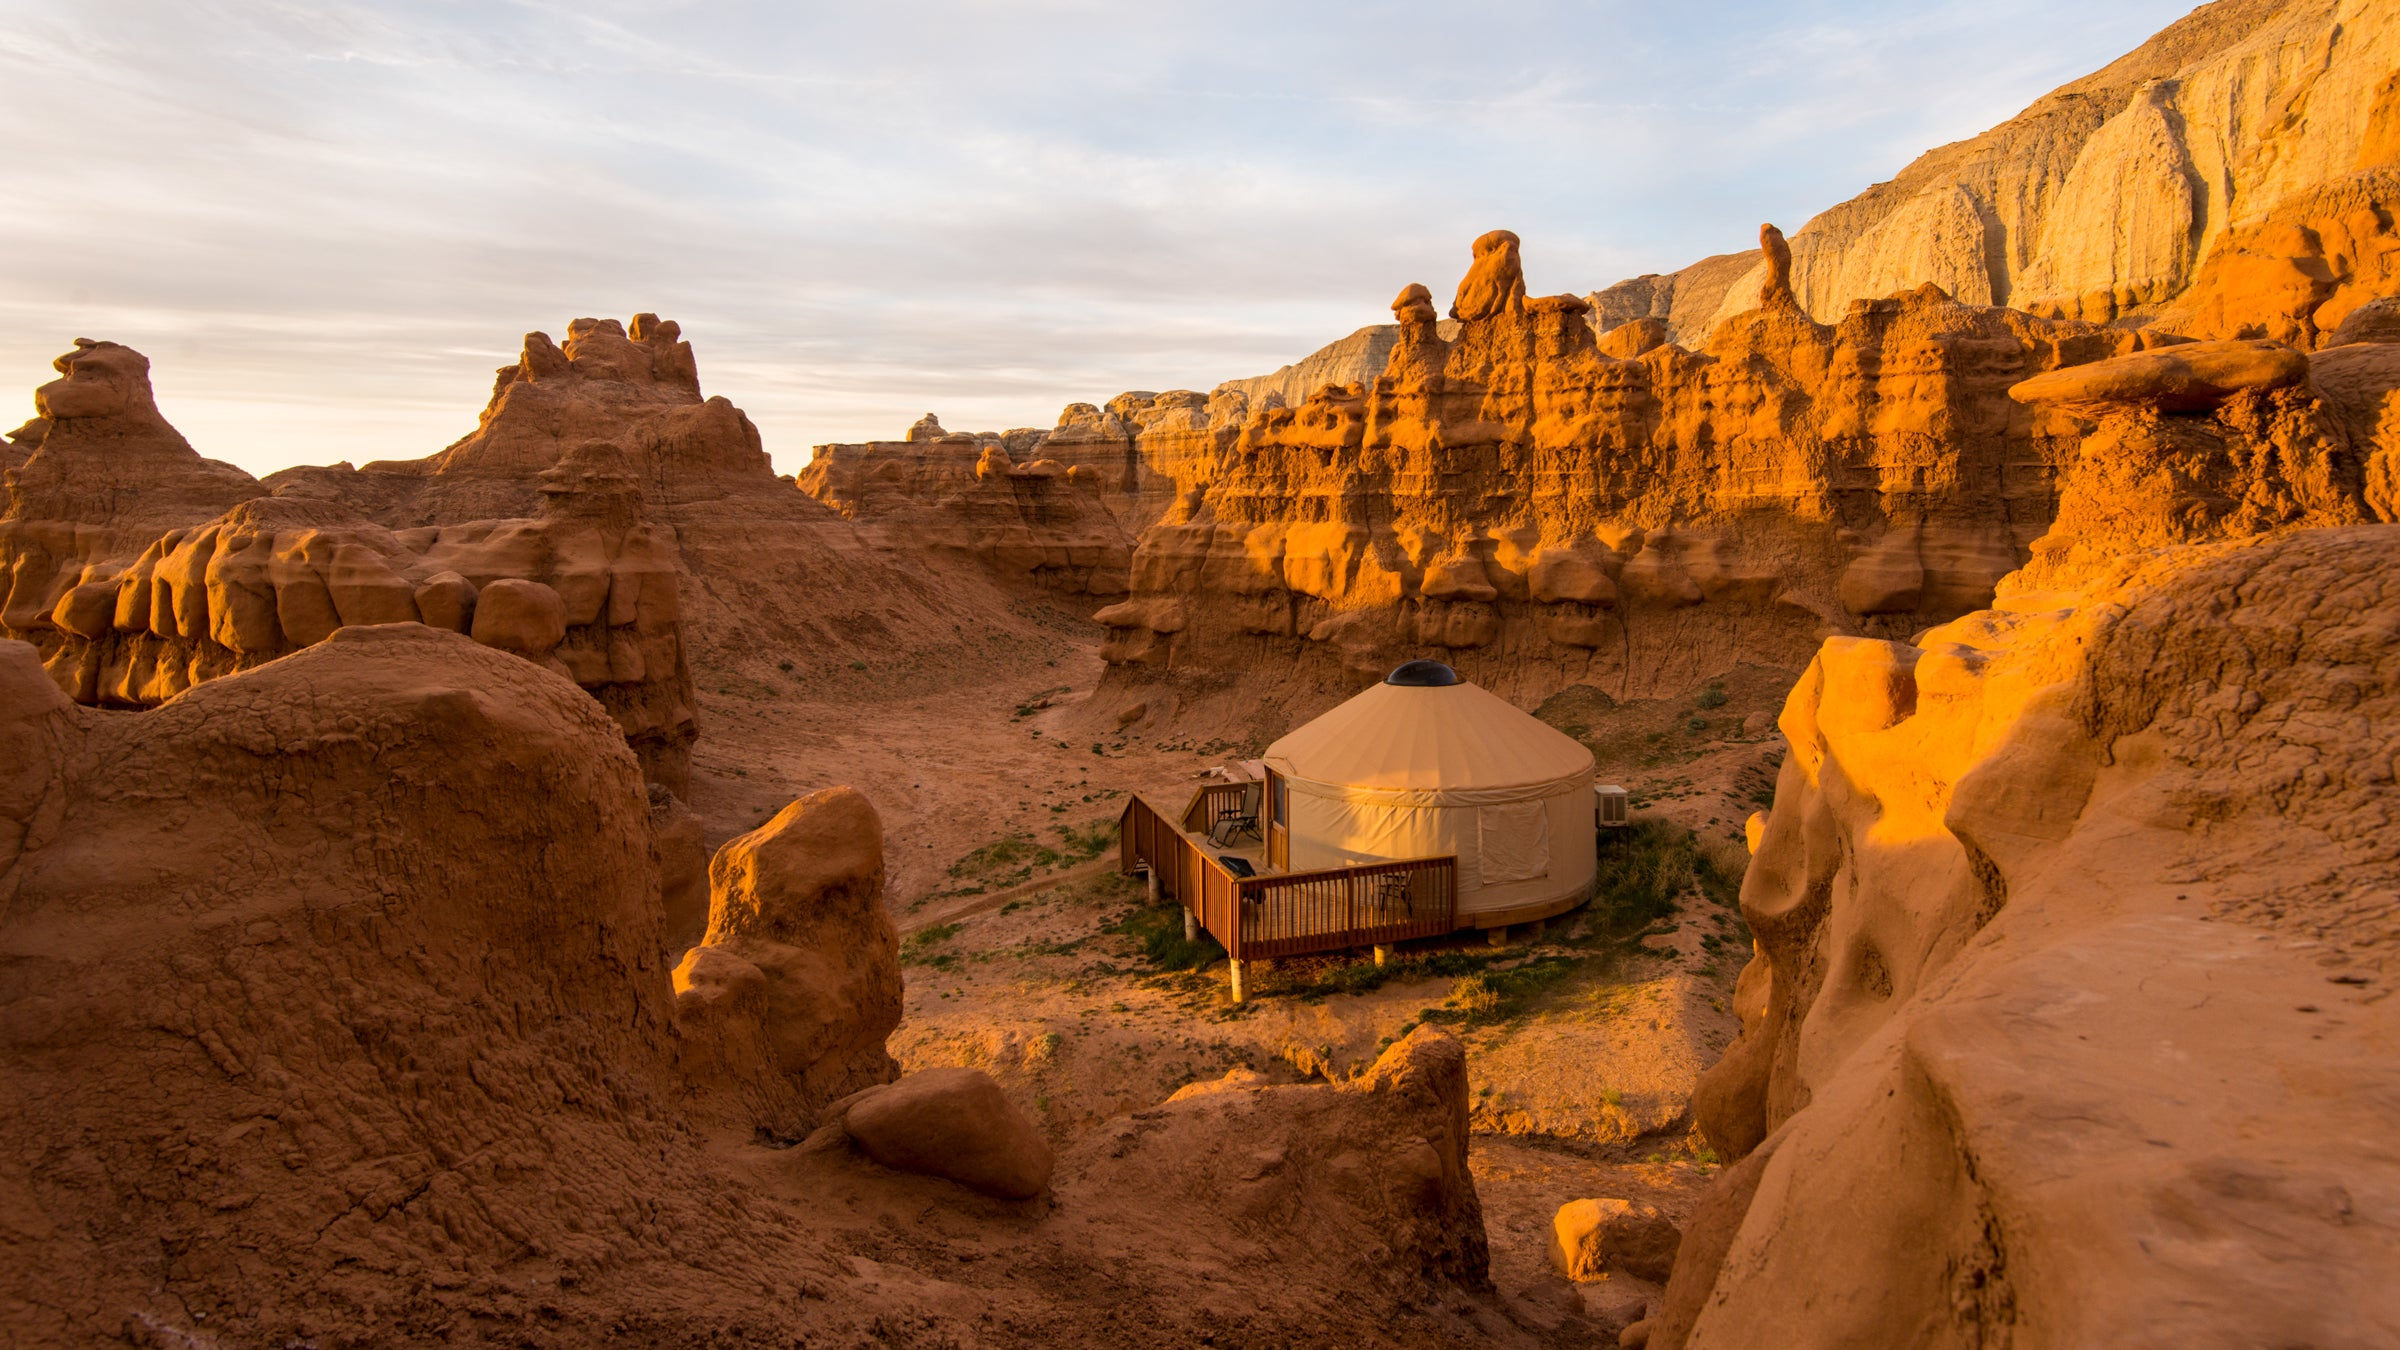 Sunrise hits a yurt below the red-rock cliffs of Goblin Valley.